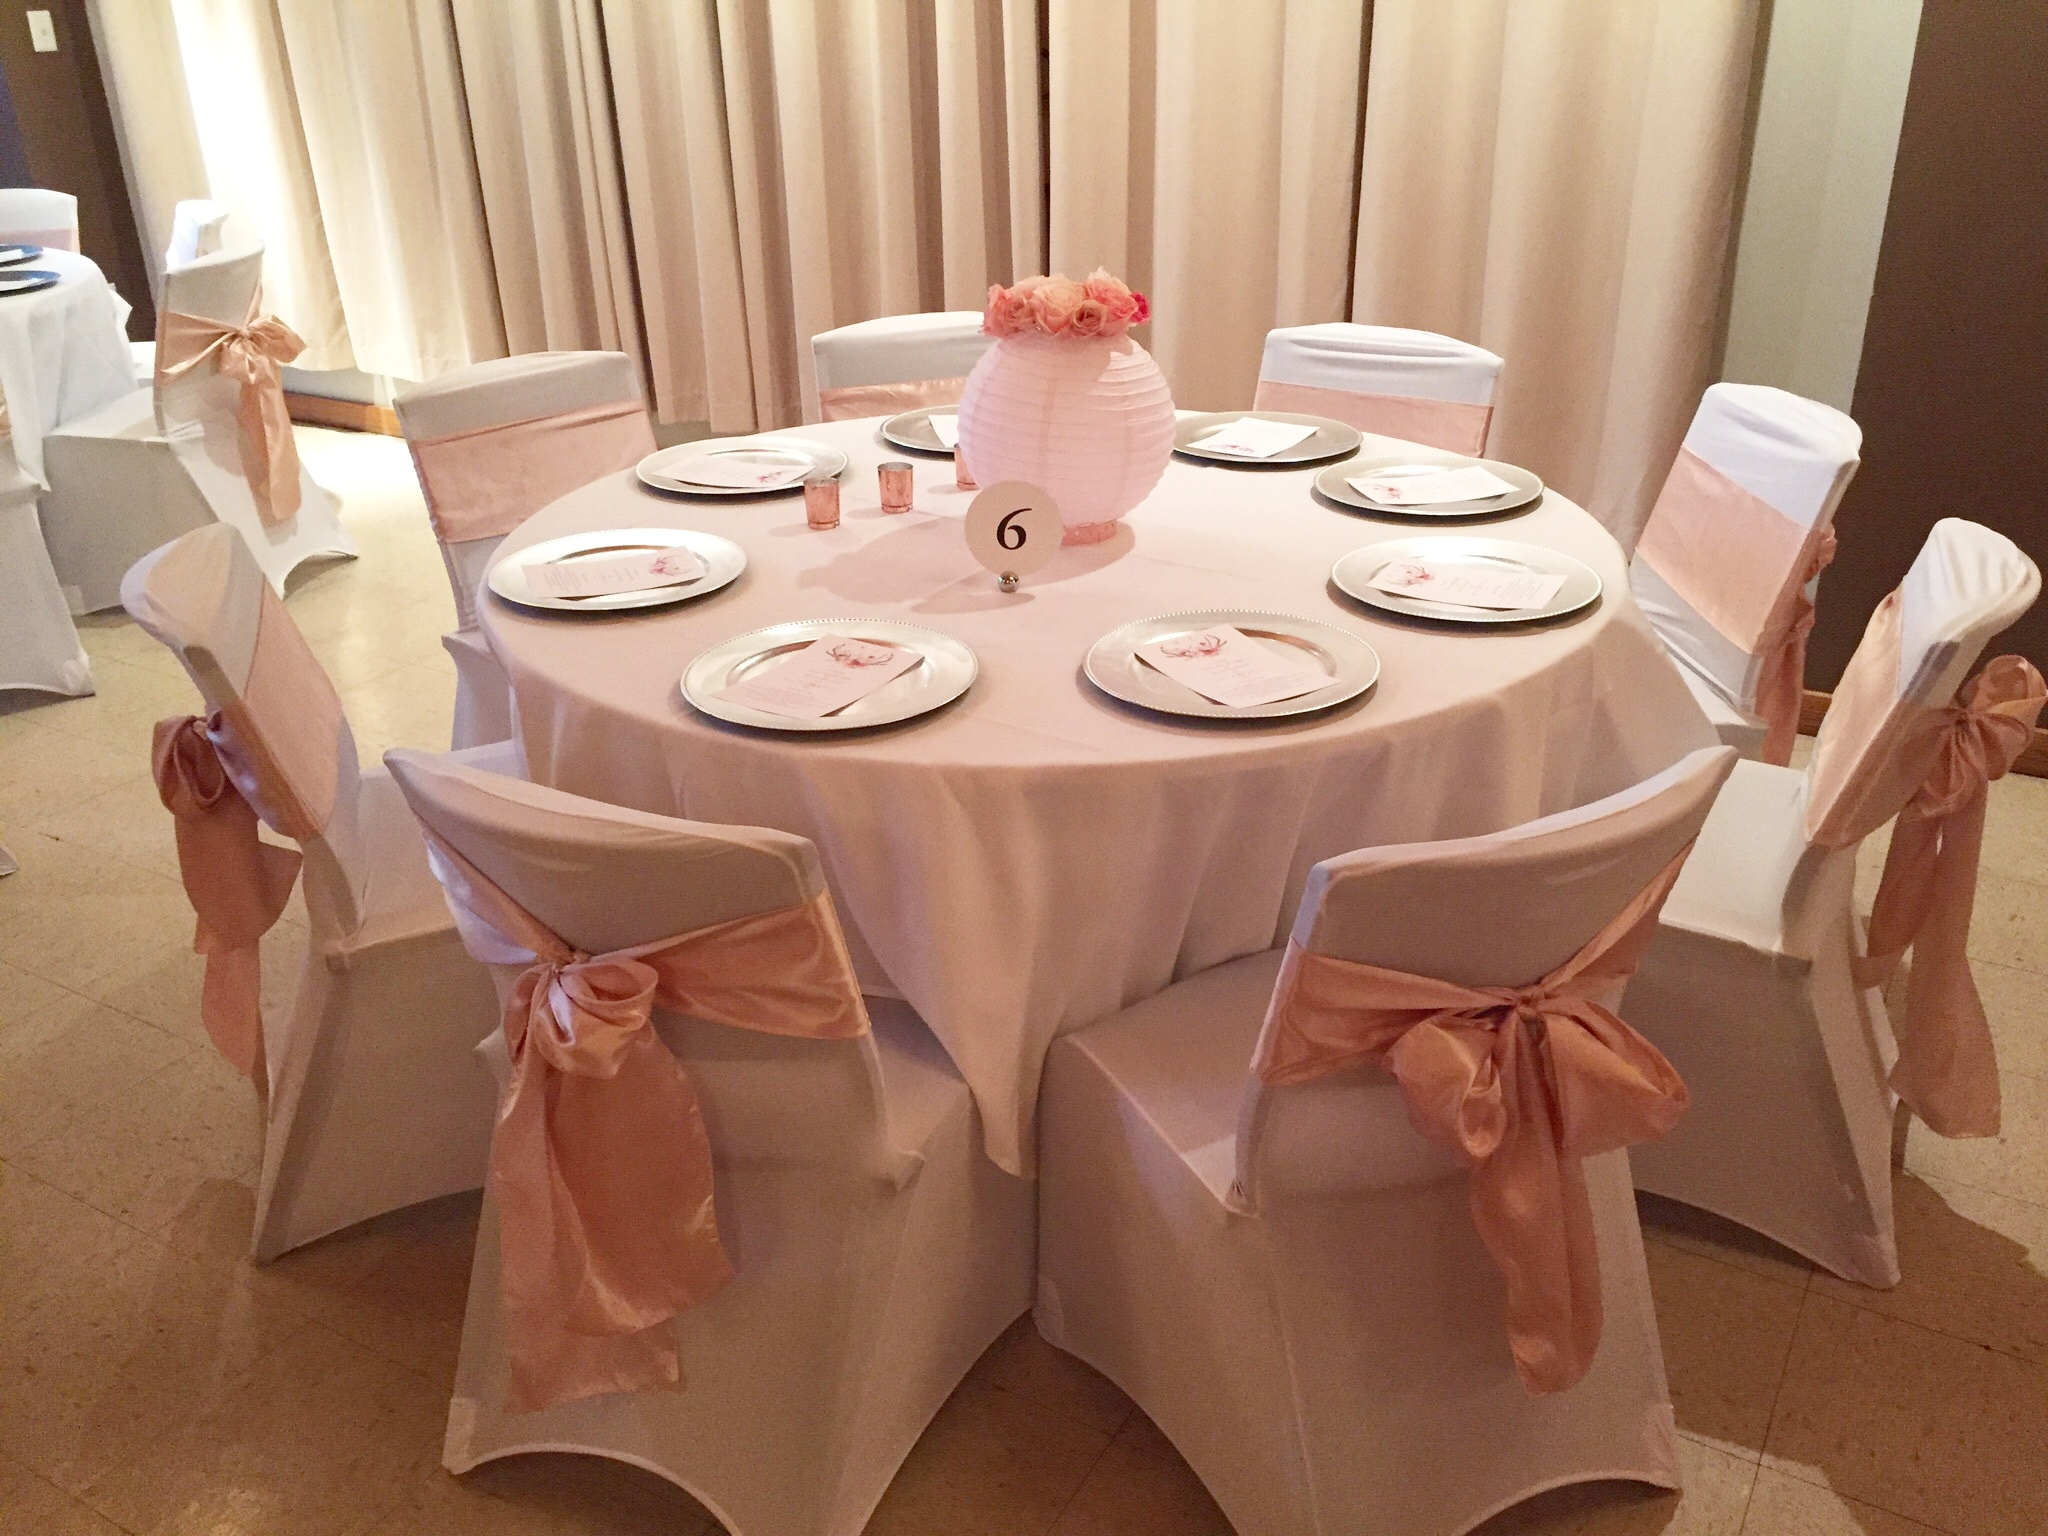 Blush sashes, silver chargers, and white chair covers